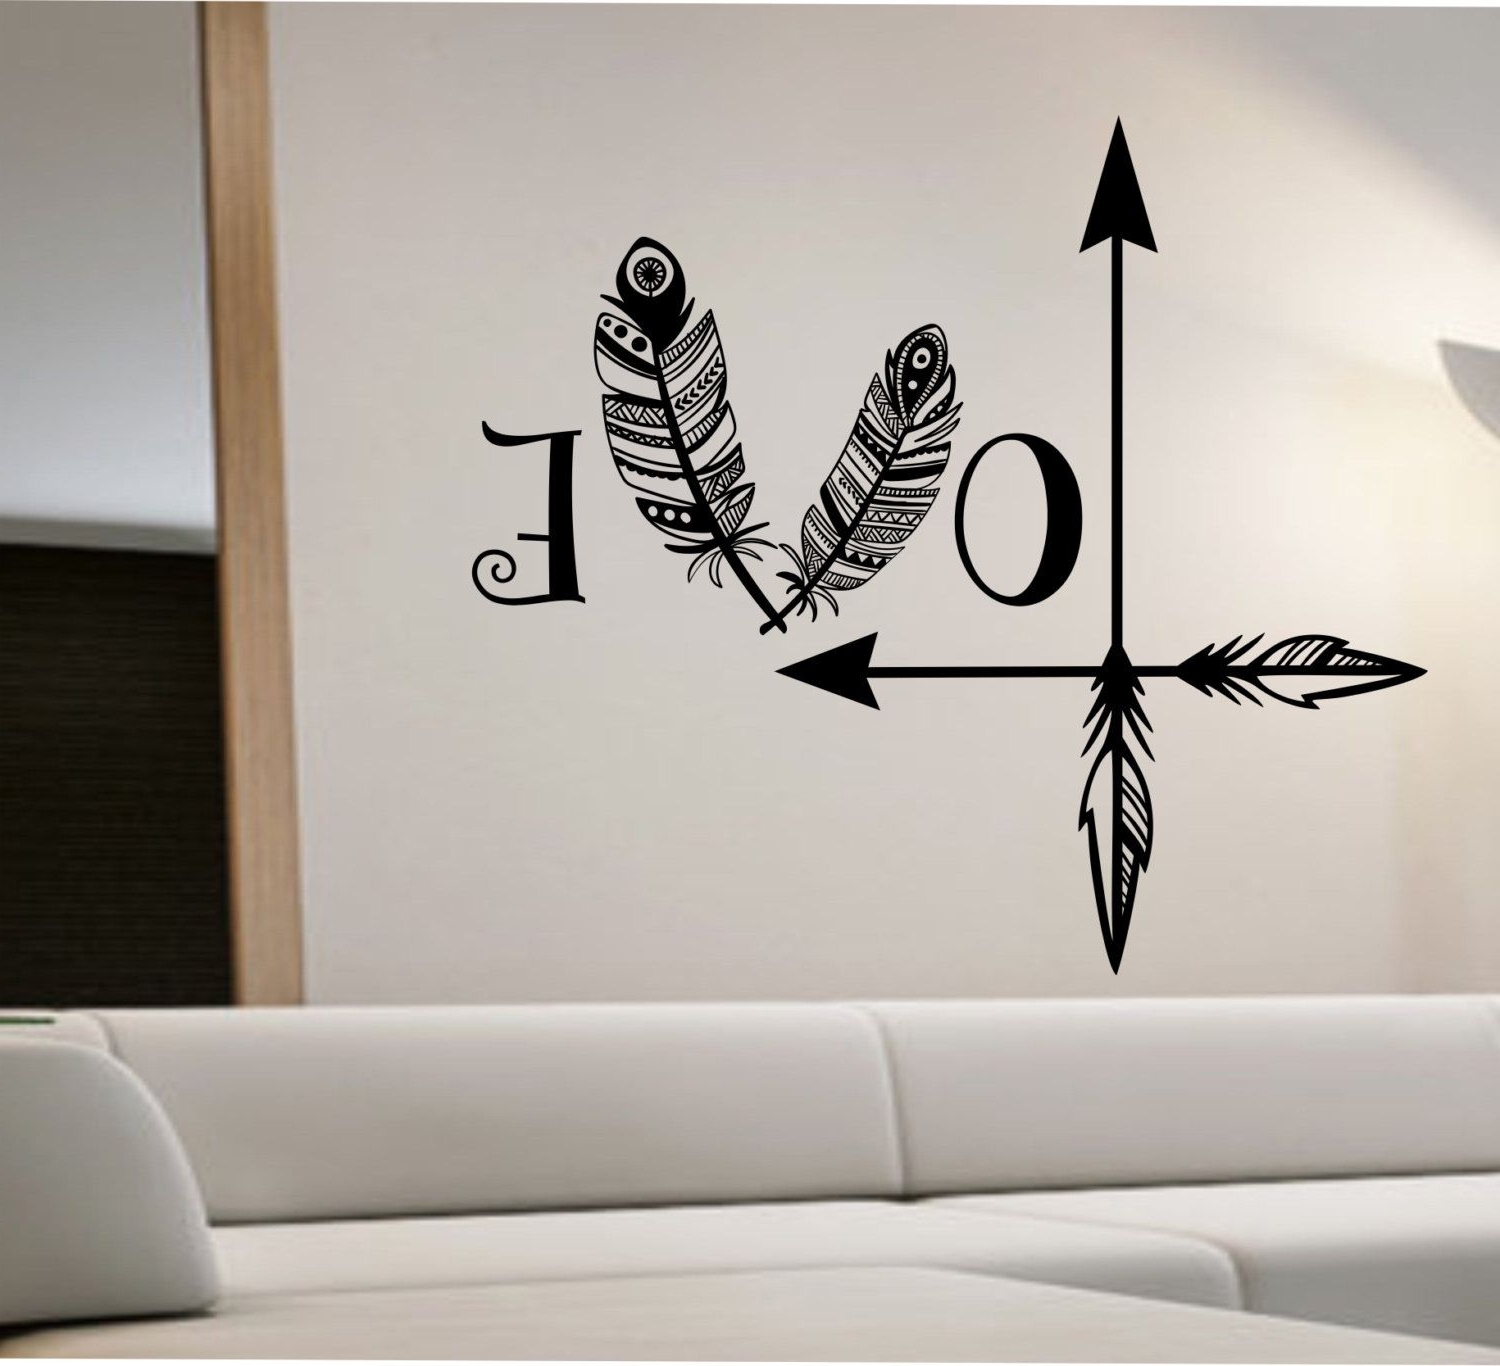 Love Arrow Wall Decal Feather Namaste Vinyl Sticker Art Decor Intended For Best And Newest Love Wall Art (View 13 of 15)